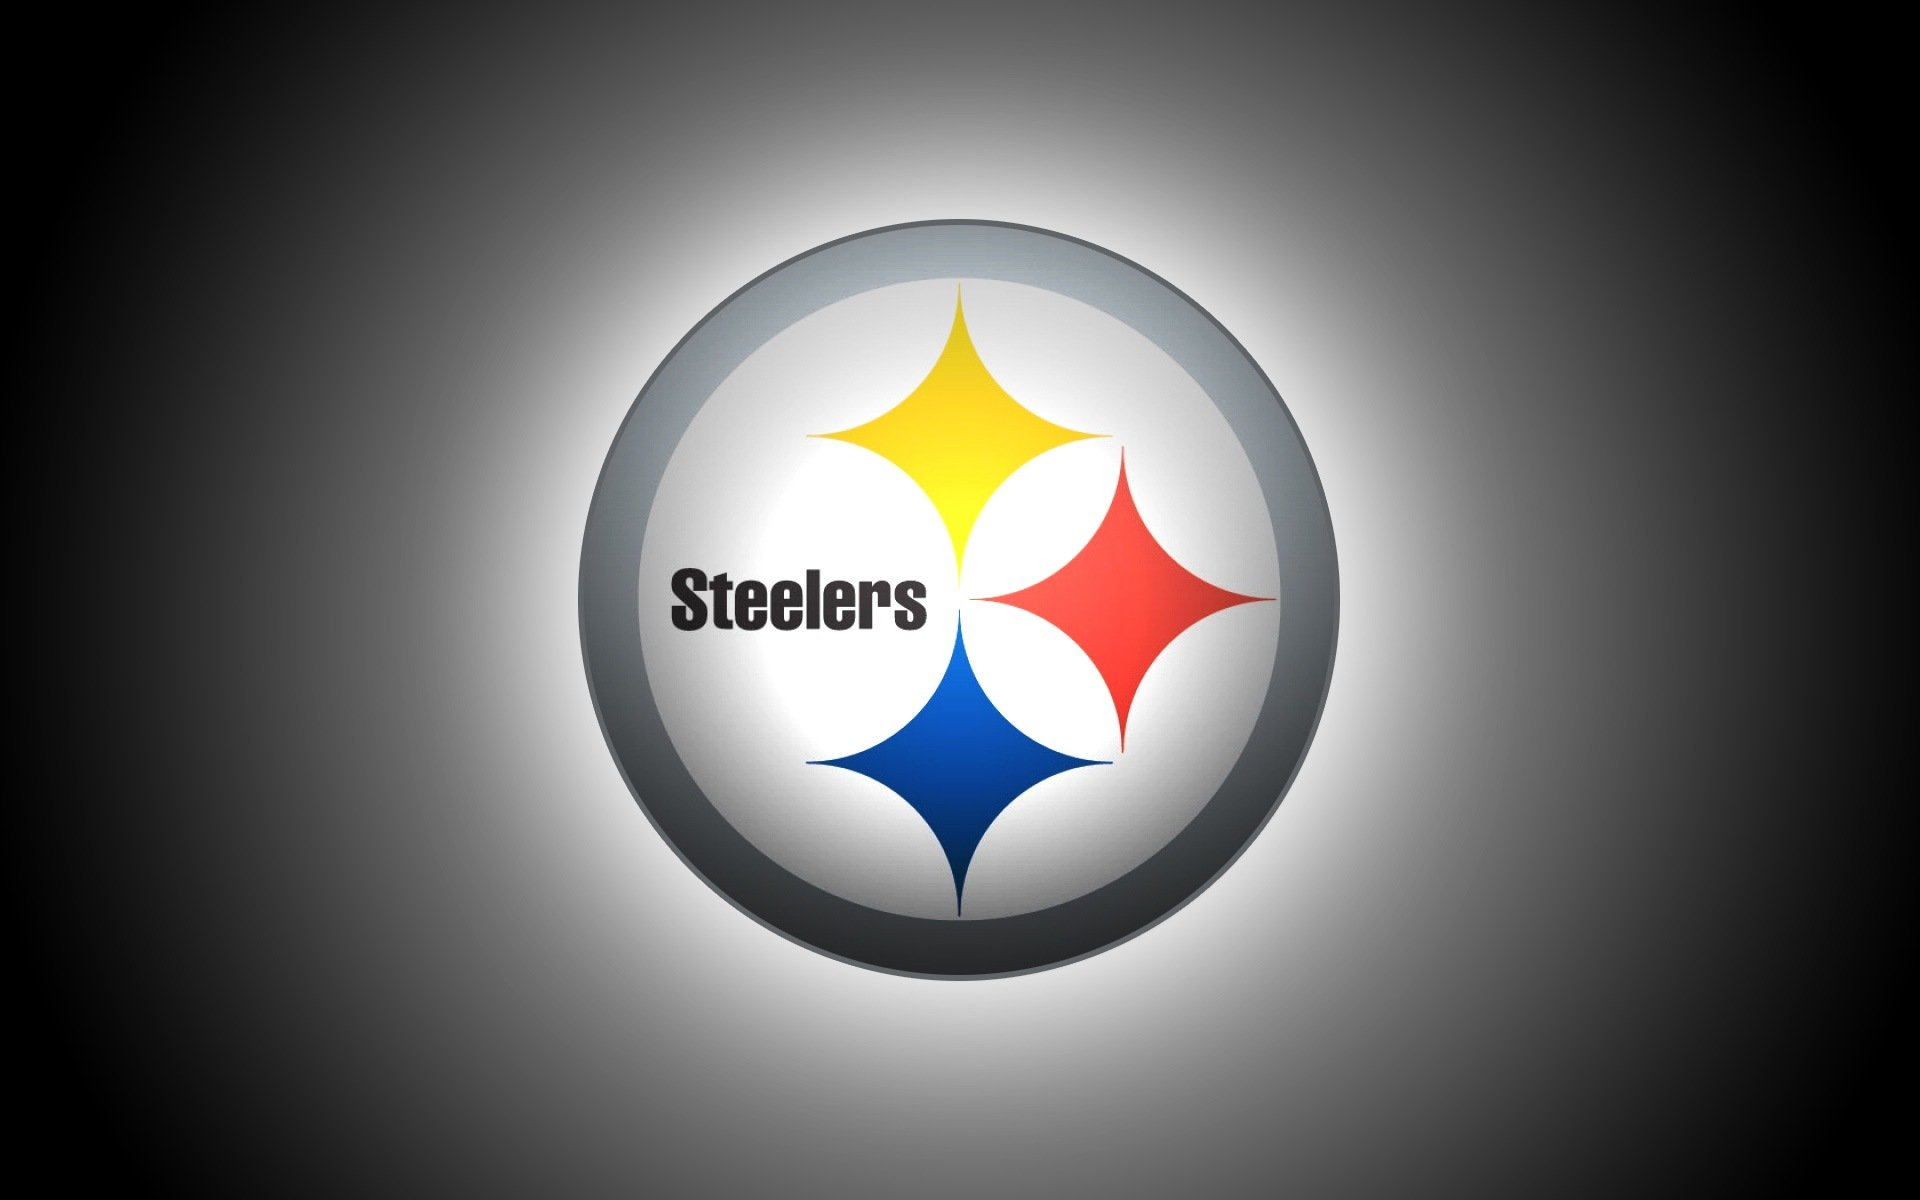 Steelers wallpaper wallpaper Pittsburgh Steelers wallpapers 1920x1200